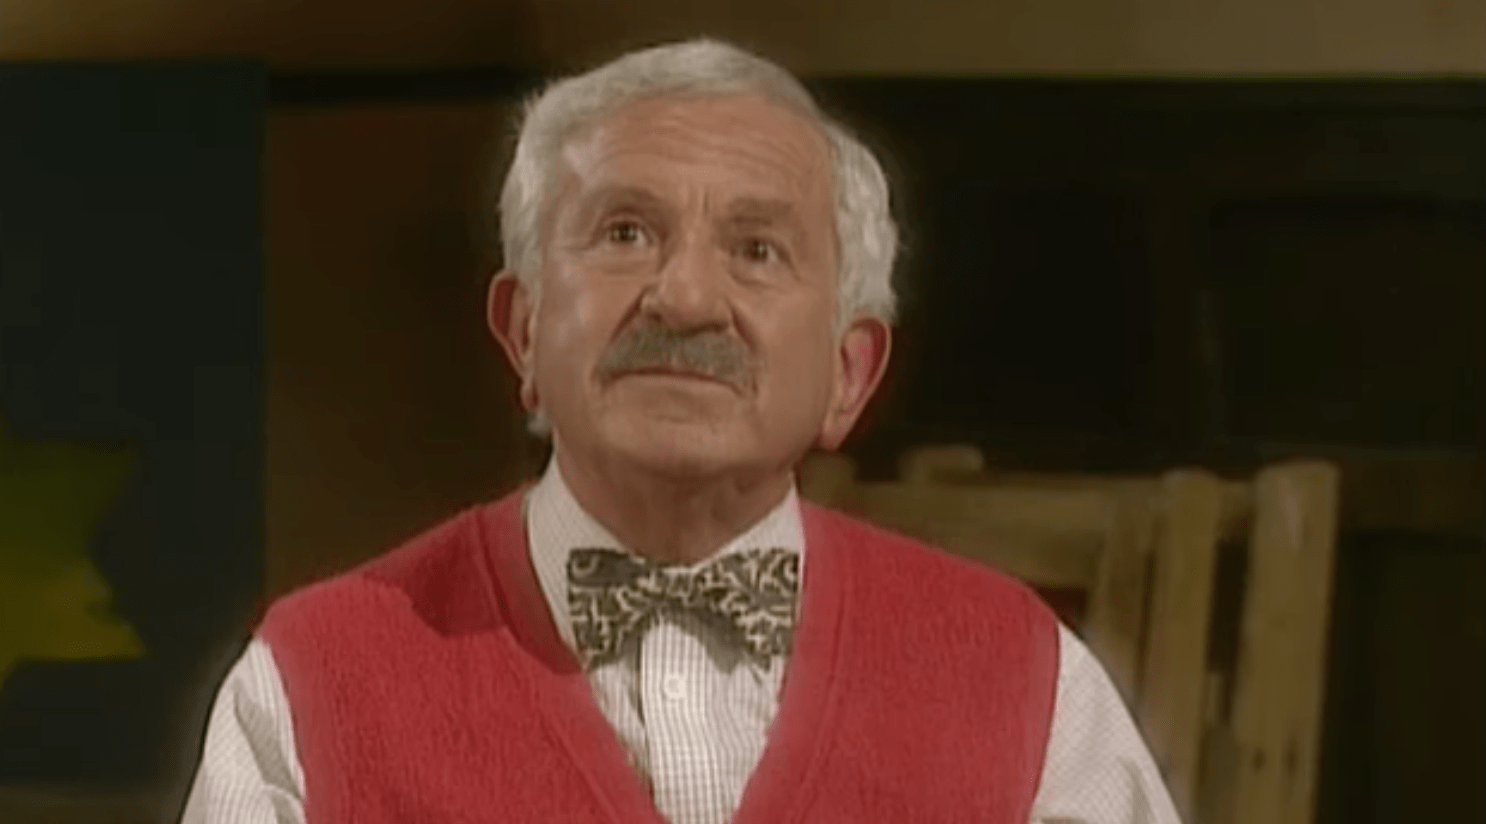 John Bluthal in Vicar of Dibley